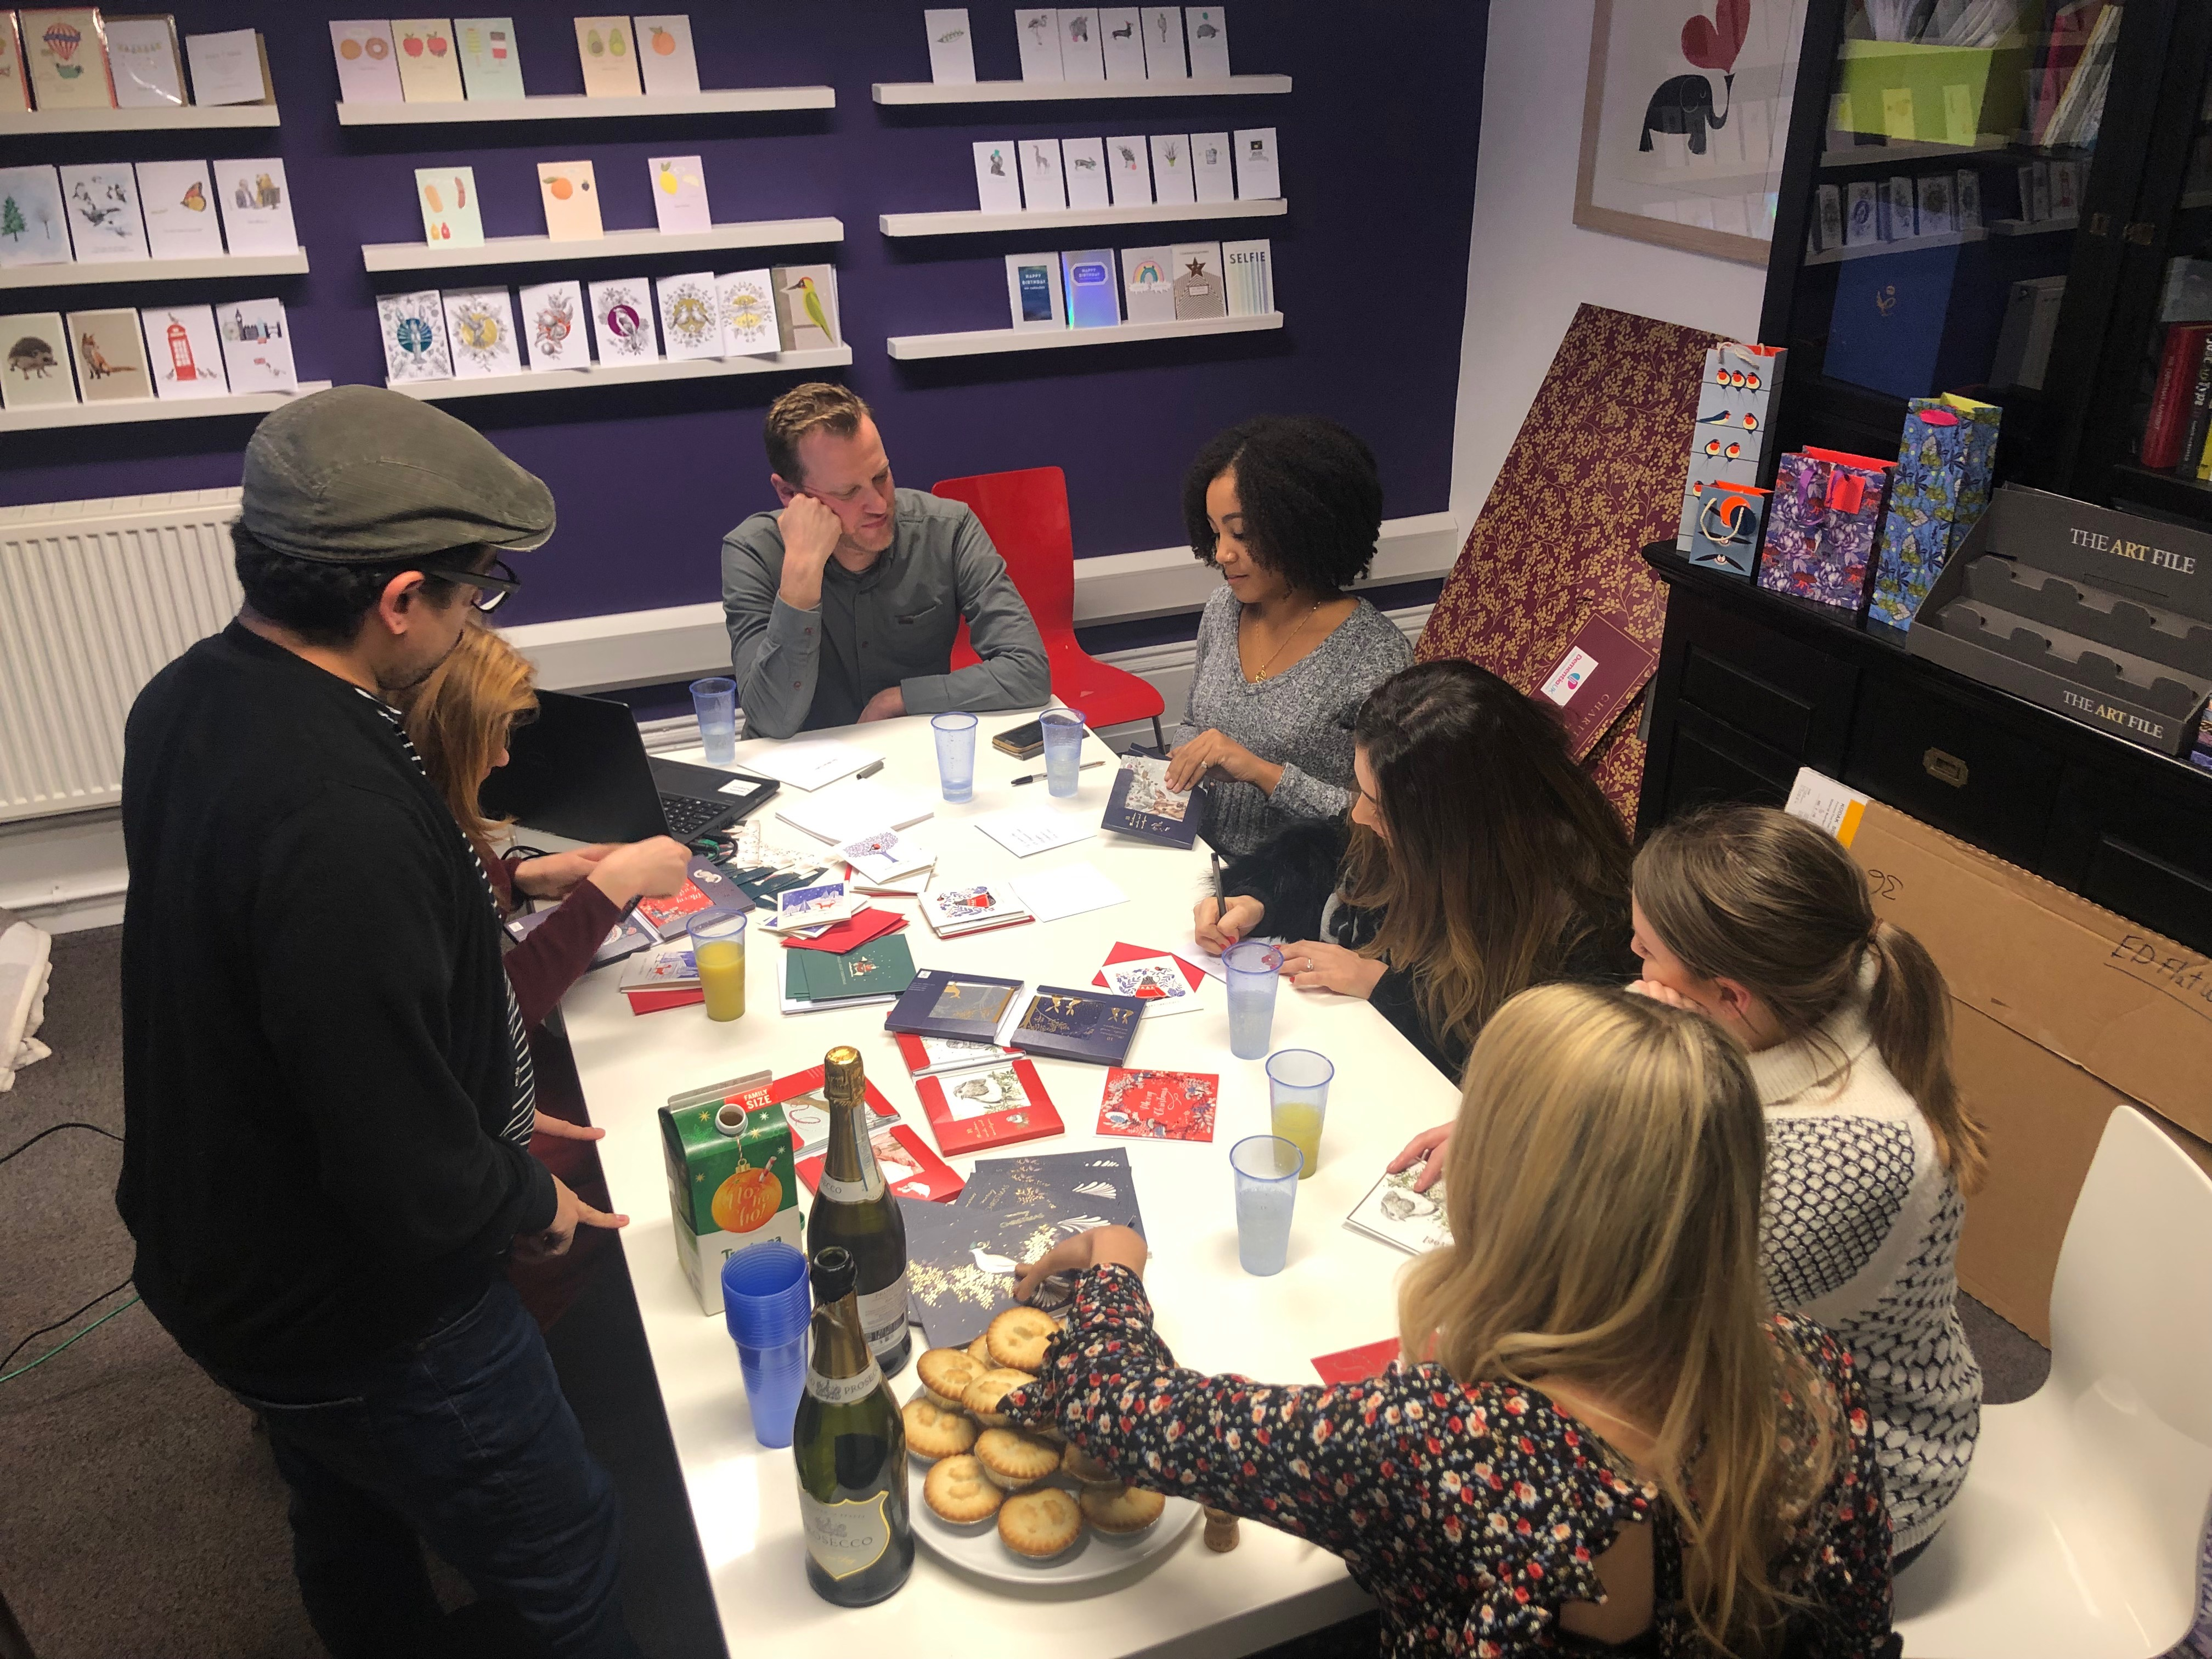 Above: The mince pies and fizz boosted the festive feeling in The Art File's Nottingham office.